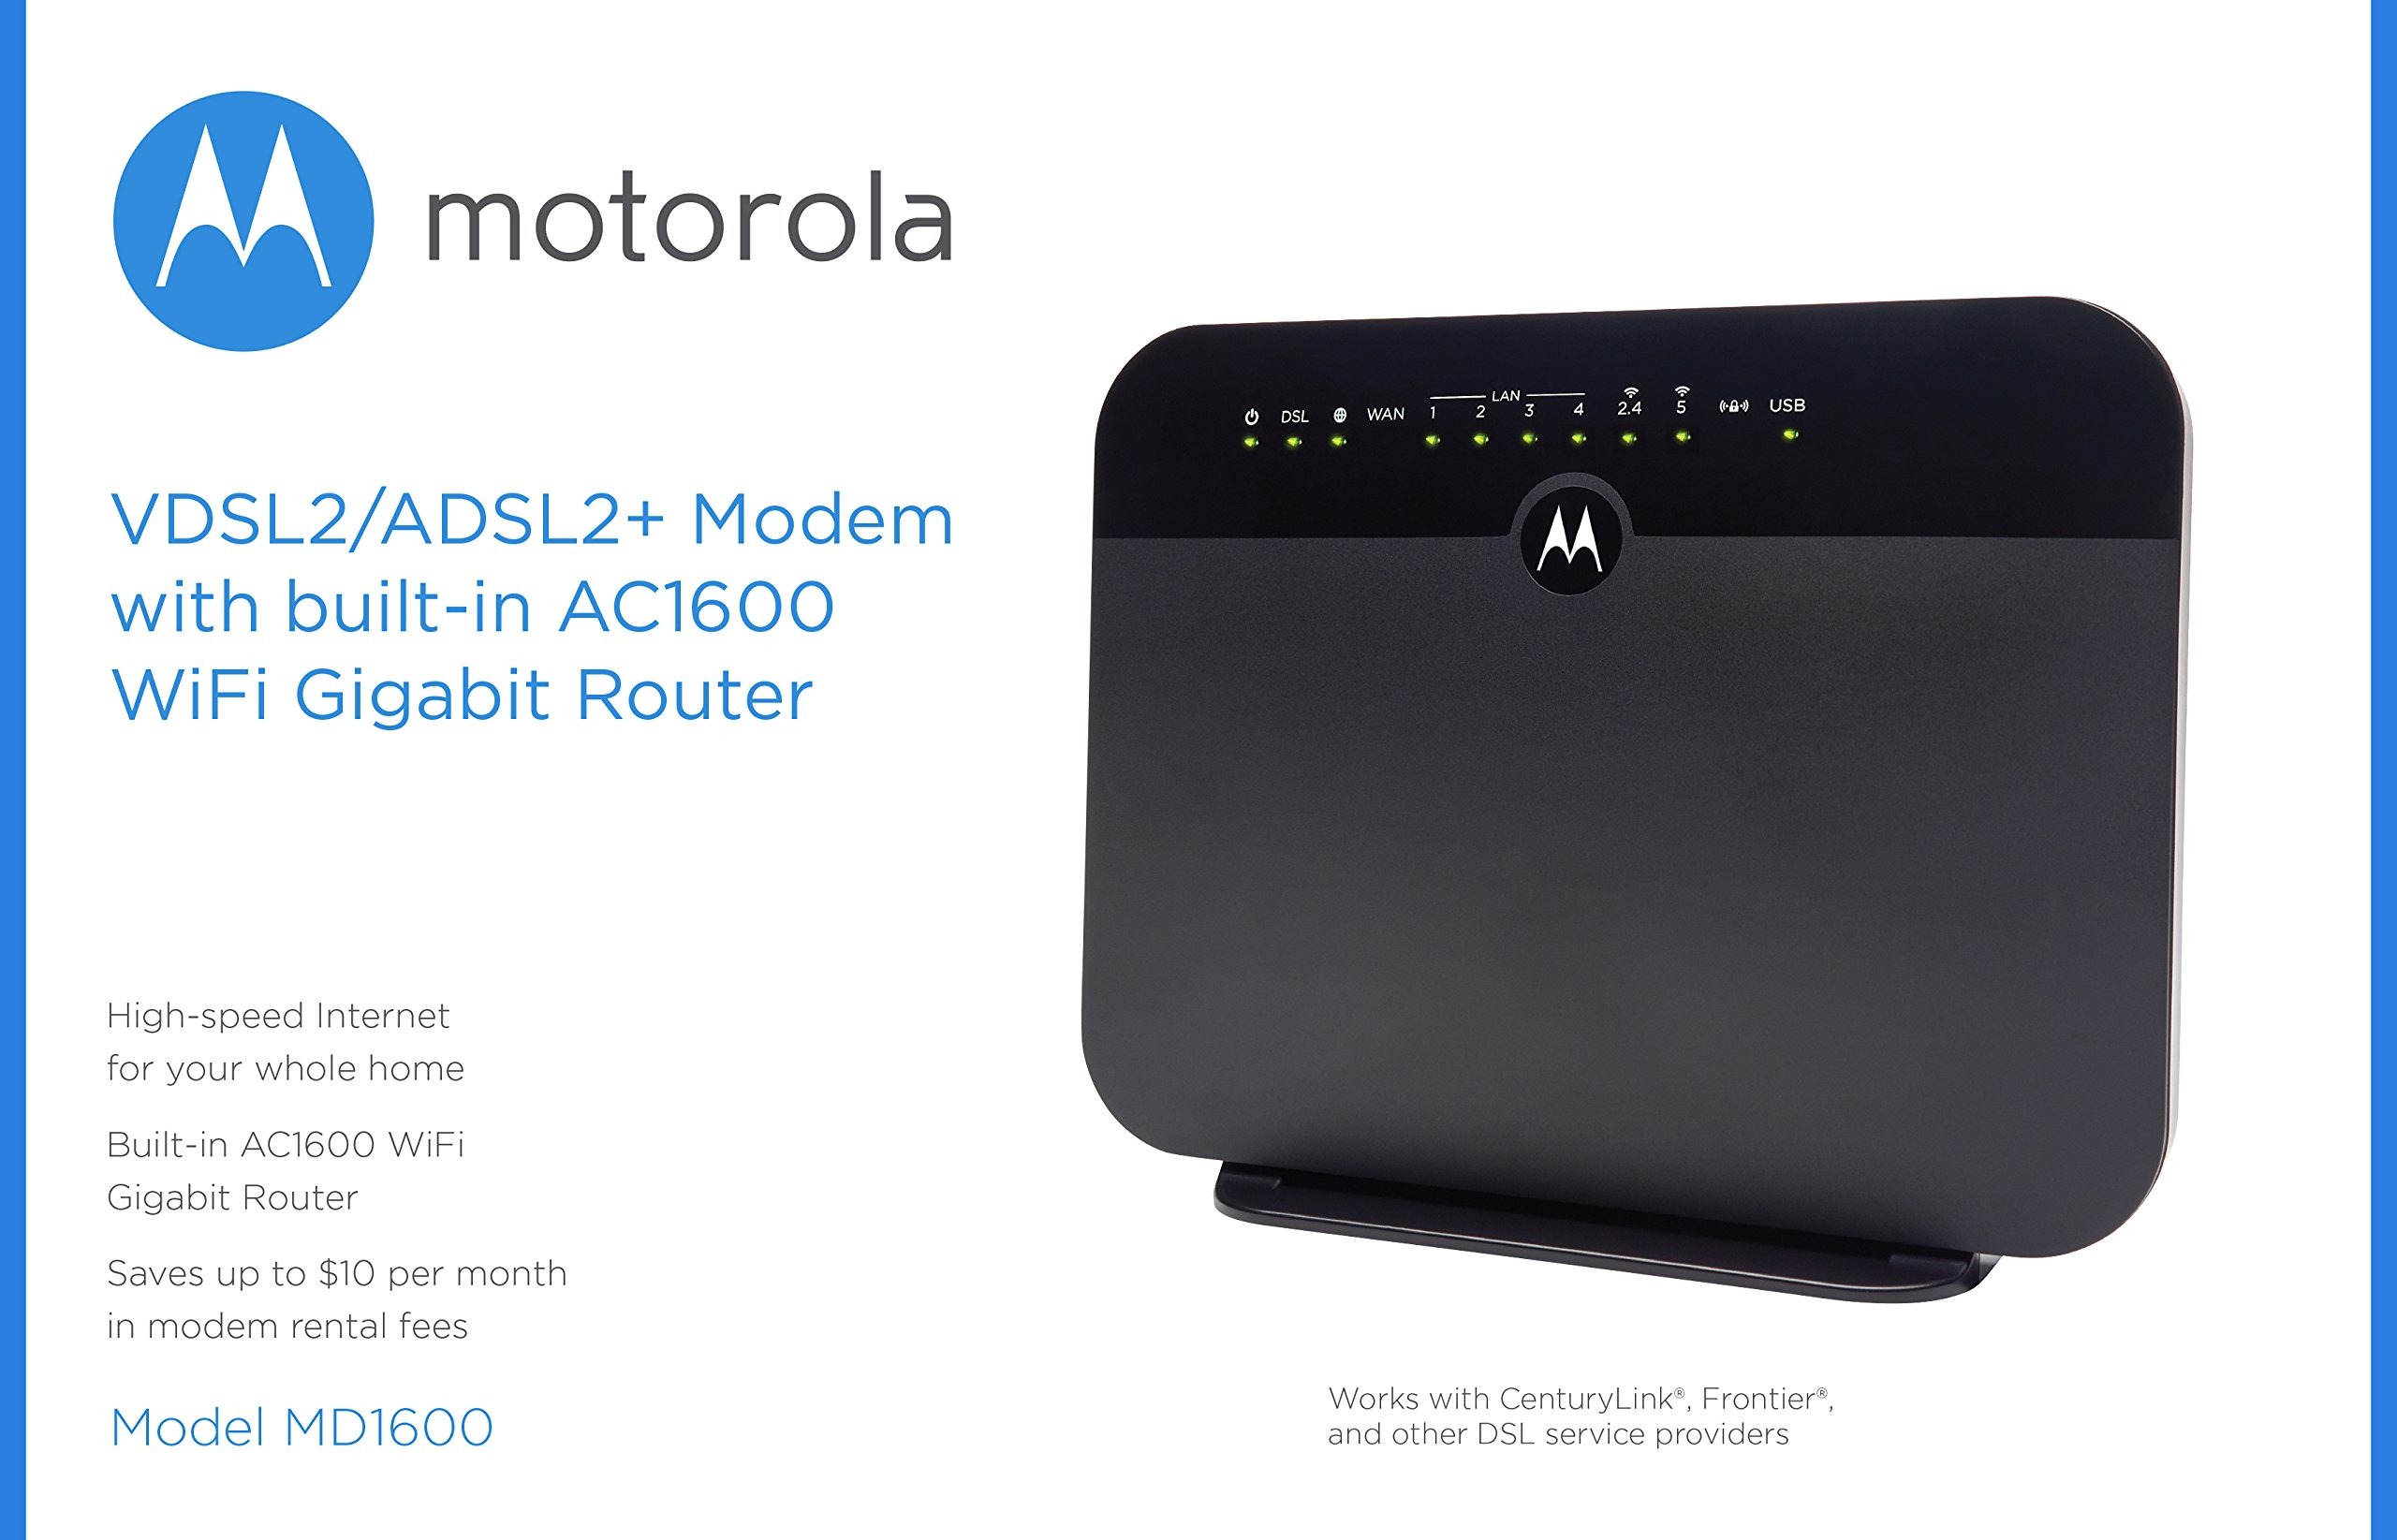 MOTOROLA VDSL2/ADSL2+ Modem + WiFi AC1600 Gigabit Router, Model MD1600, for Non-Bonded, Non-Vectoring DSL from CenturyLink, Frontier, and Some Other DSL Providers 4 IMPORTANT: MODEL MD1600 DOES NOT WORK WITH BONDED VDSL, BONDED ADSL, OR VDSL VECTORING. PLEASE READ THE CHECKLIST in the product images on this page before purchasing this product. If you're still not sure whether you have the right type of DSL service, BE SURE TO ASK YOUR SERVICE PROVIDER BEFORE purchasing this product. MODEL MD1600 IS NEVER COMPATIBLE WITH VERIZON OR AT&T SERVICES. The MD1600 IS NEVER compatible with Comcast, Charter Spectrum, Cox, or other cable services The MD1600 is a great choice for most ADSL and VDSL services from CenturyLink, Frontier, Windstream, TDS Telecom, and Fairpoint. .It combines a VDSL2/ADSL2+ modem with a full-featured AC1600 WiFi Gigabit router to provide fast Internet to all your WiFi and Ethernet devices. DSL services use the telephone wiring in your home. Supplying your own modem typically saves $9.99 in modem rental fees for CenturyLink, and savings vary for other service providers. Built-in router includes four Gigabit Ethernet ports, AC1600 wireless, a firewall, WPA/WPA2 wireless security, IPv4 and IPv6 support, and Virtual Private Network (VPN) capability. You can plug a USB storage device into the MD1600's USB 2.0 host port for Network Attached Storage (NAS) which supports DLNA Media Sharing.